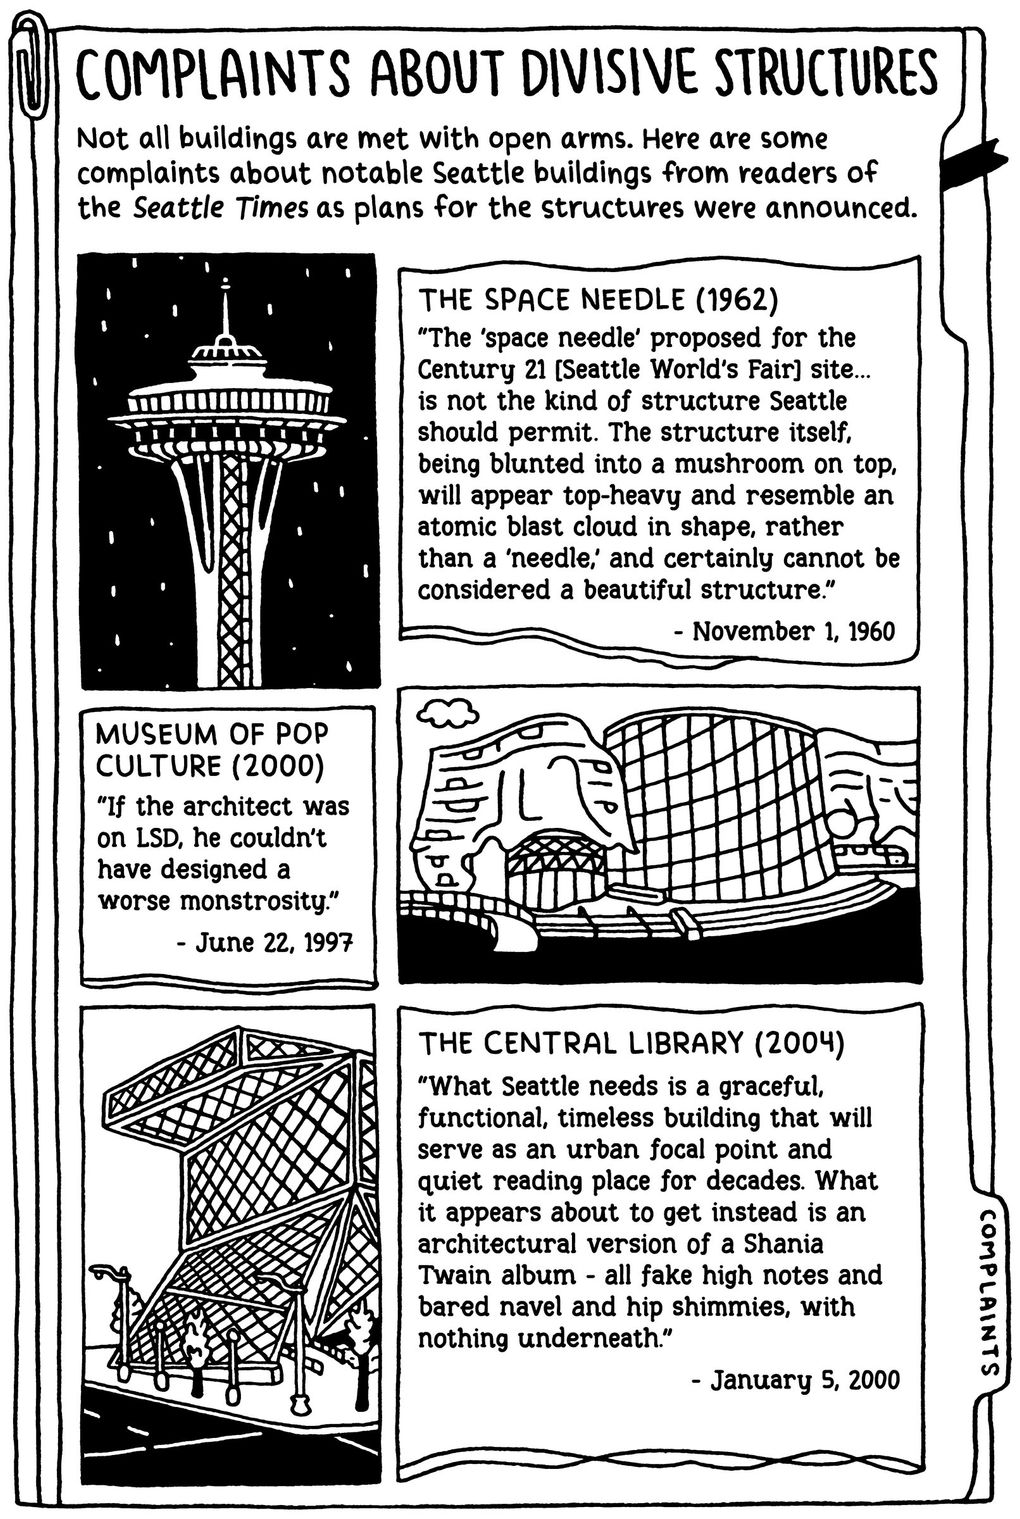 """In 2004, a Seattle Times reader decried Seattle Public Library's Central branch as """"an architectural version of a Shania Twain album."""" That don't impress me much. (©2021 by Susanna Ryan. Excerpted from """"Secret Seattle"""" by permission of Sasquatch Books)"""